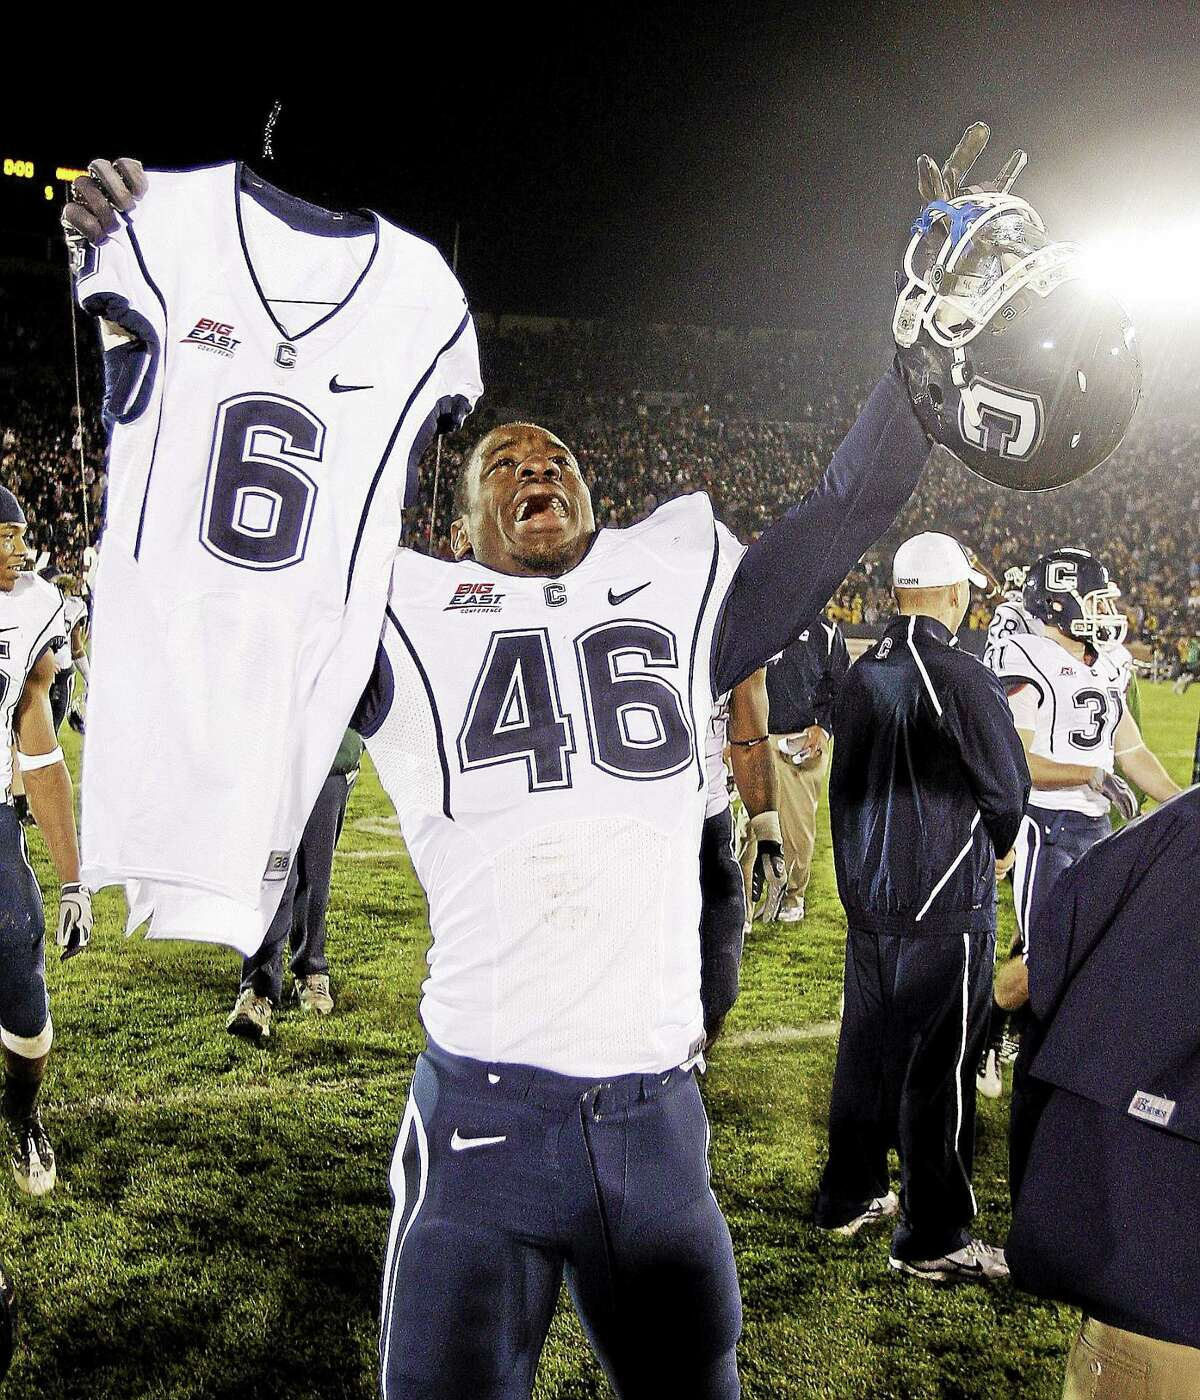 UConn linebacker Sio Moore carries the jersey of Jasper Howard after the Huskies defeated Notre Dame 33-30 in double overtime on Nov. 21, 2009, in South Bend, Ind.